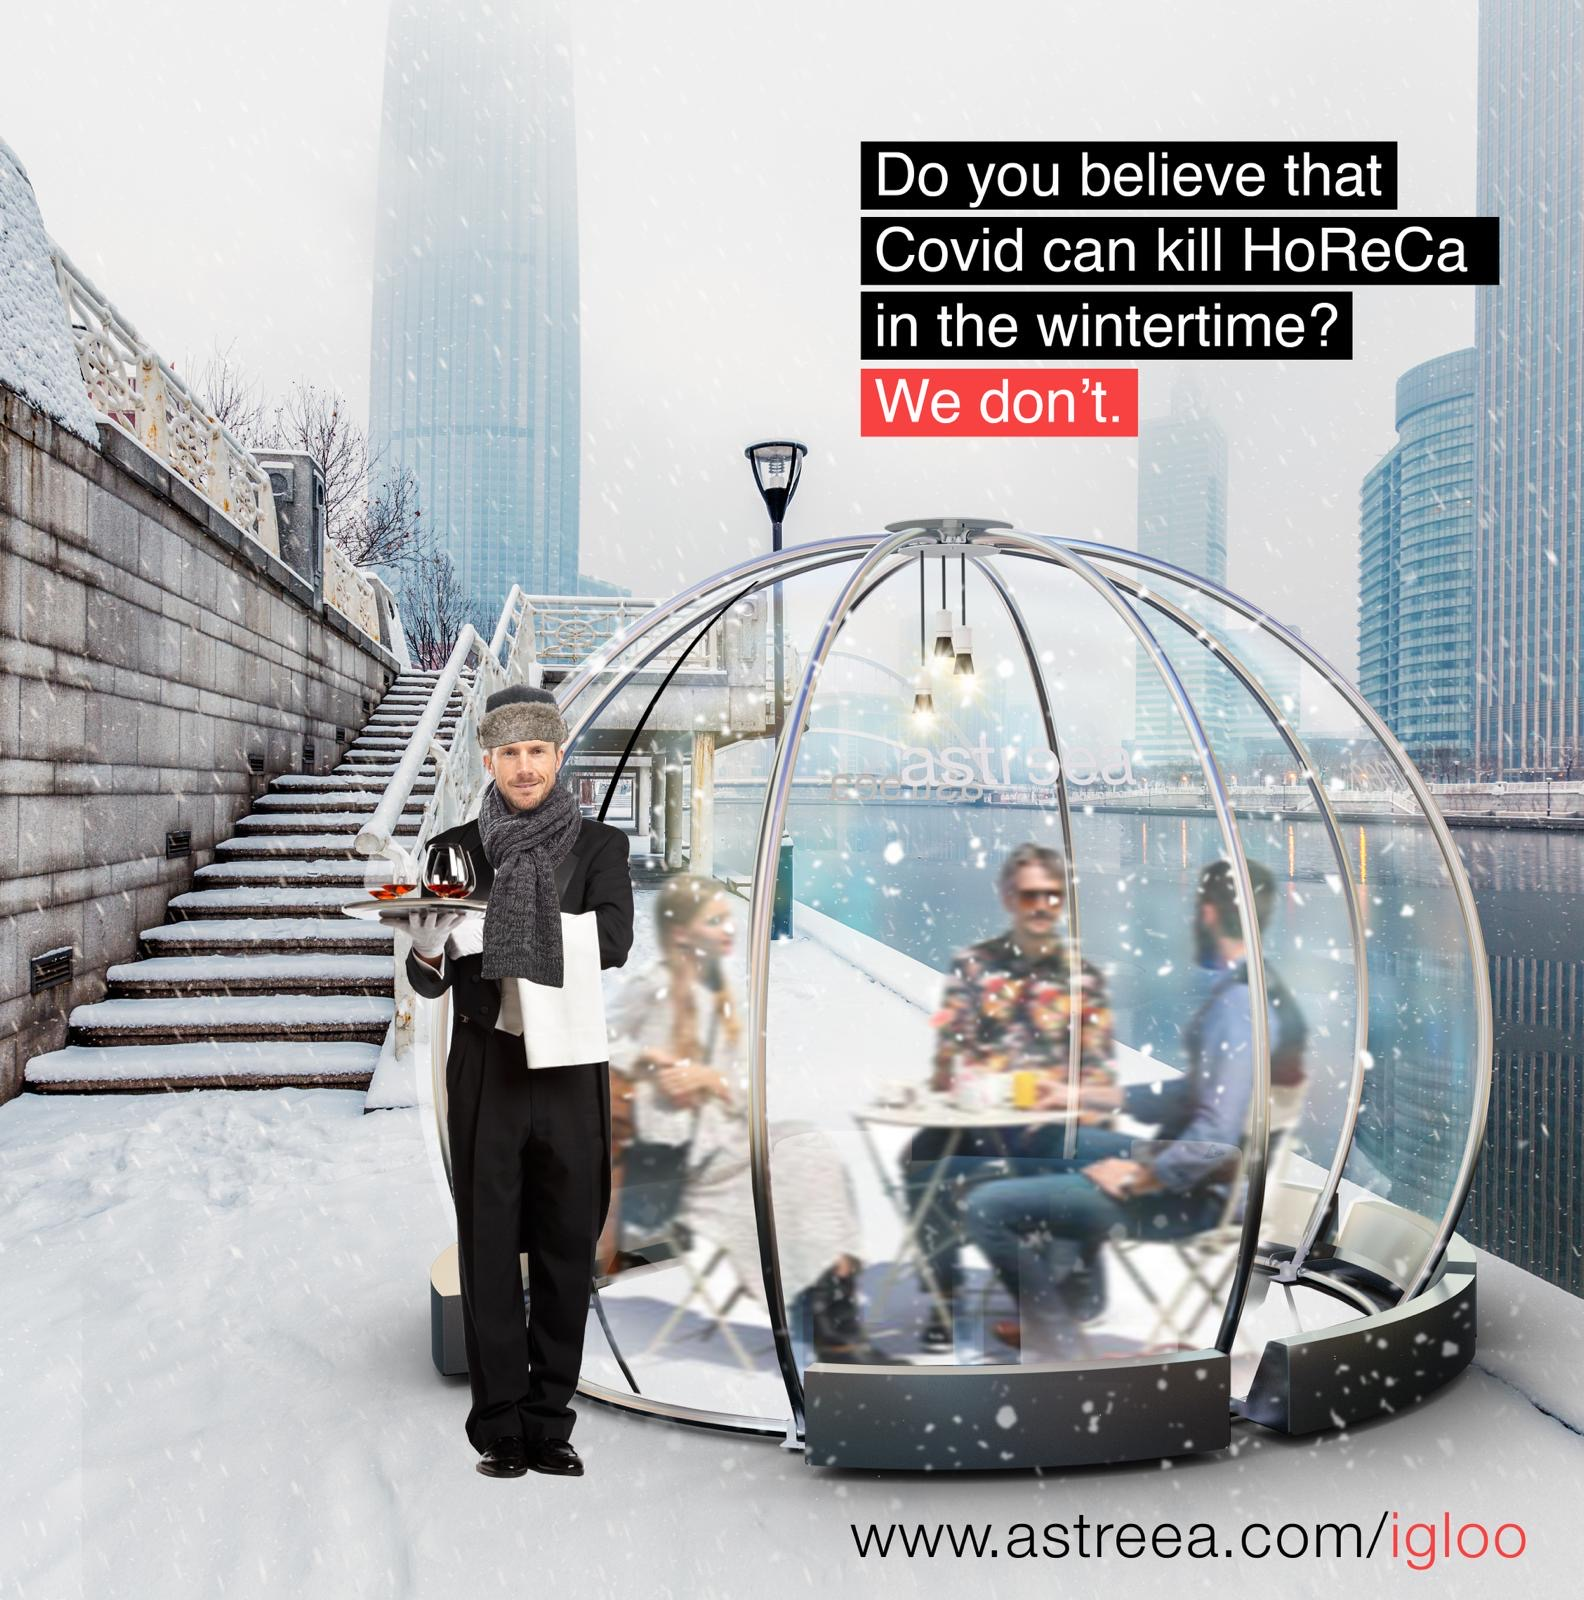 Introducing Astreea Igloo – here to keep restaurants open around the world